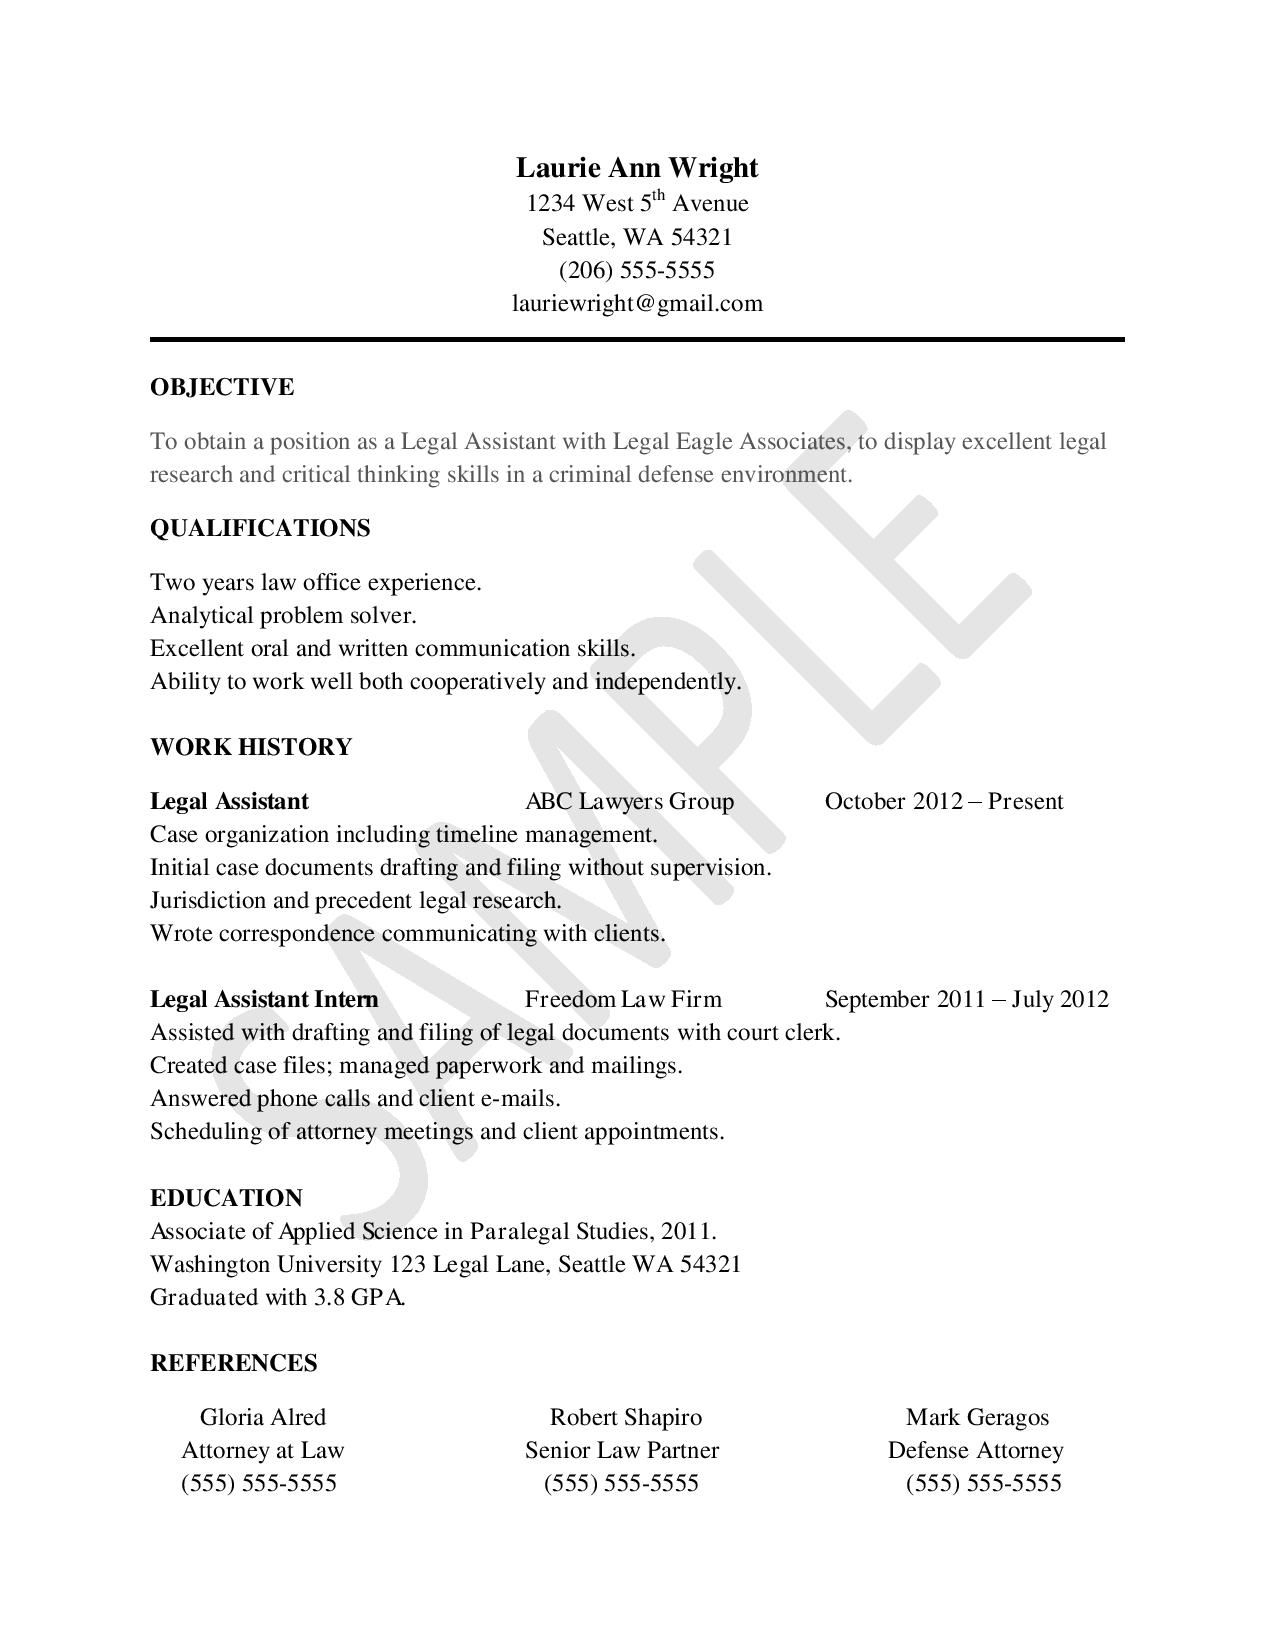 Law Student Resume Sample Resume For Legal Assistants  Legalassistant